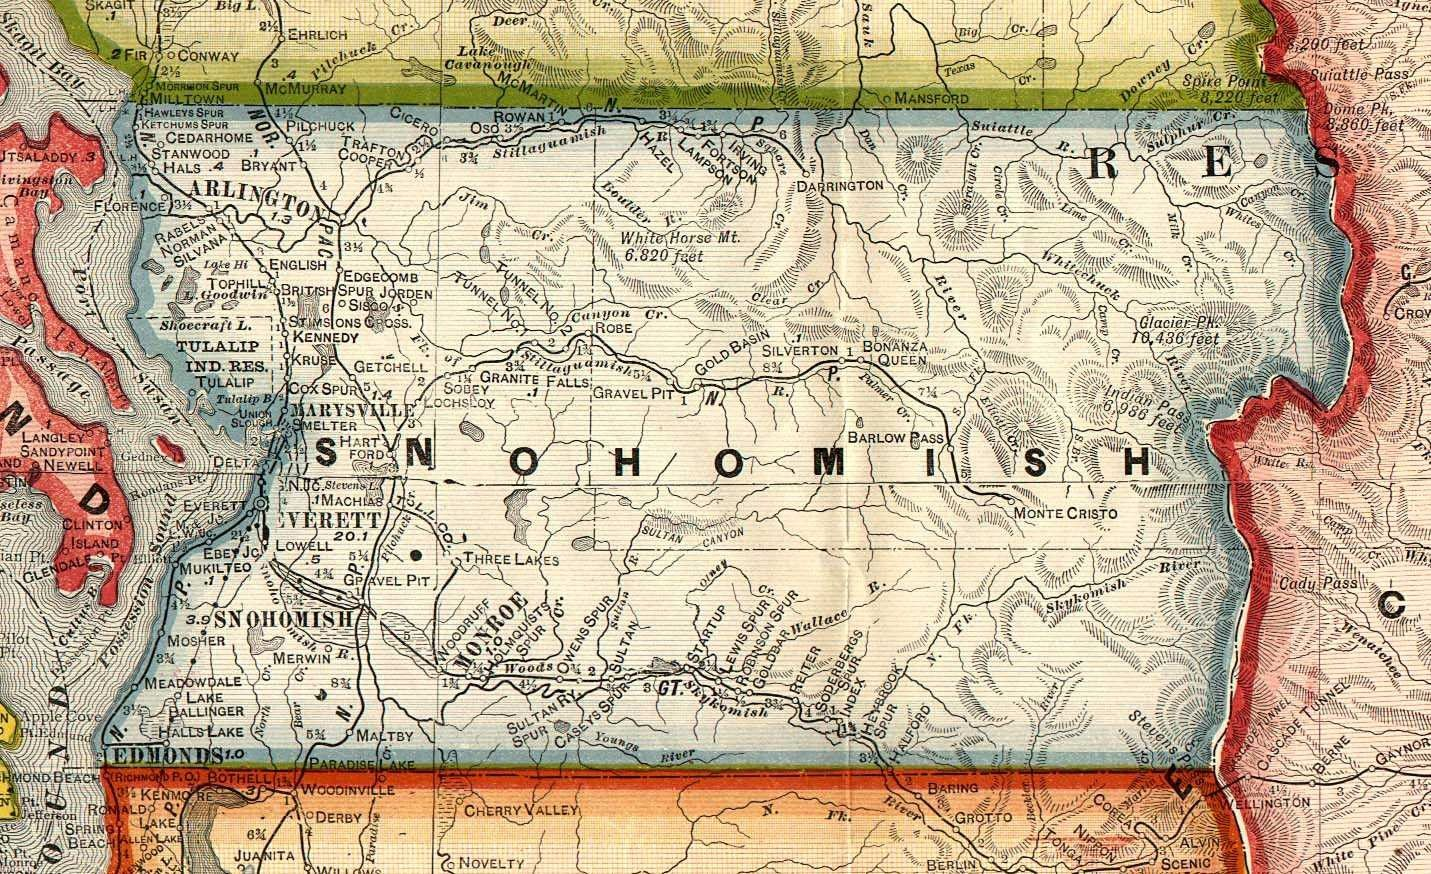 Explore Snohomish County Snohomish Washington and more